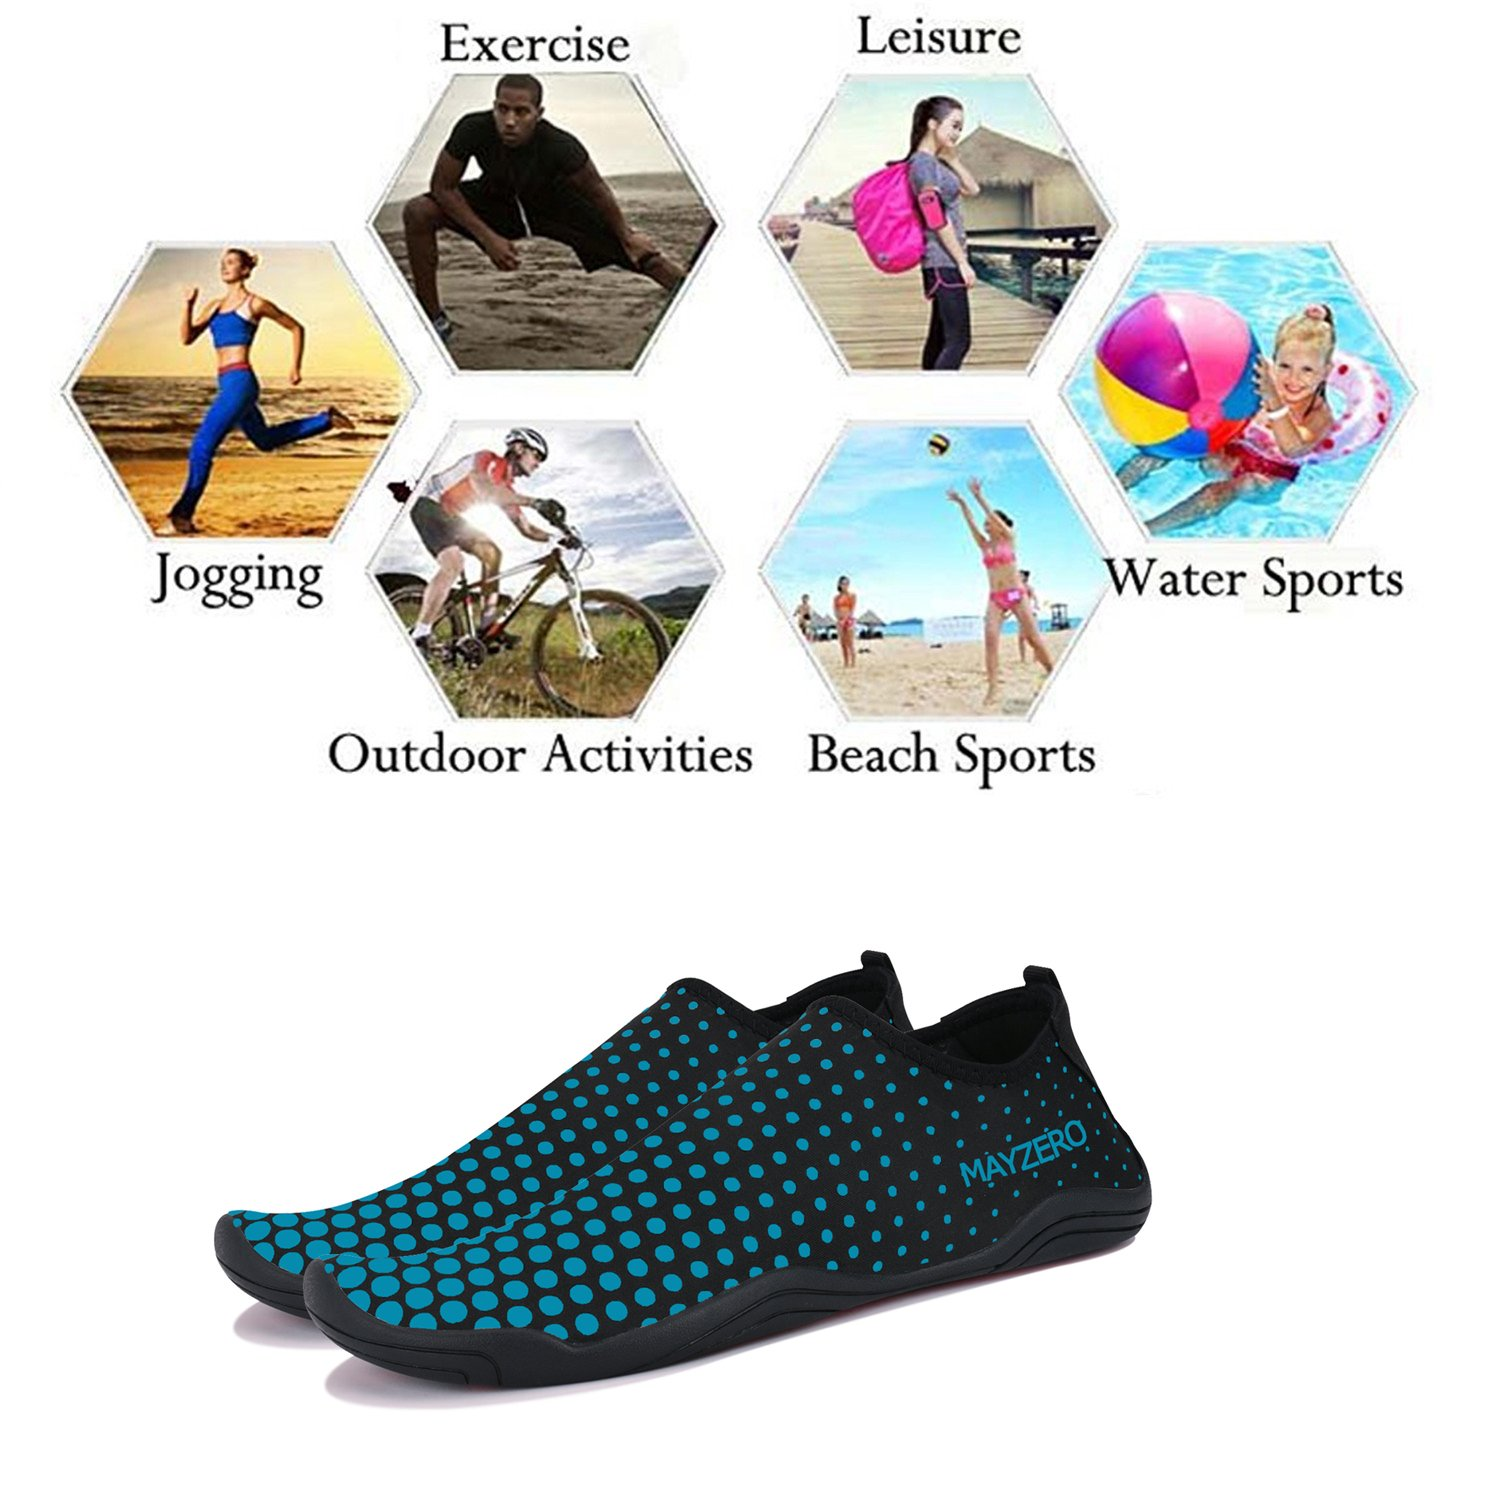 WXDZ Men Women Water Sports Shoes Quick Dry Barefoot Aqua Socks Swim Shoes for Pool Beach Walking Running (10.5 US Women/9 US Men, Dot-Blue) by WXDZ (Image #6)